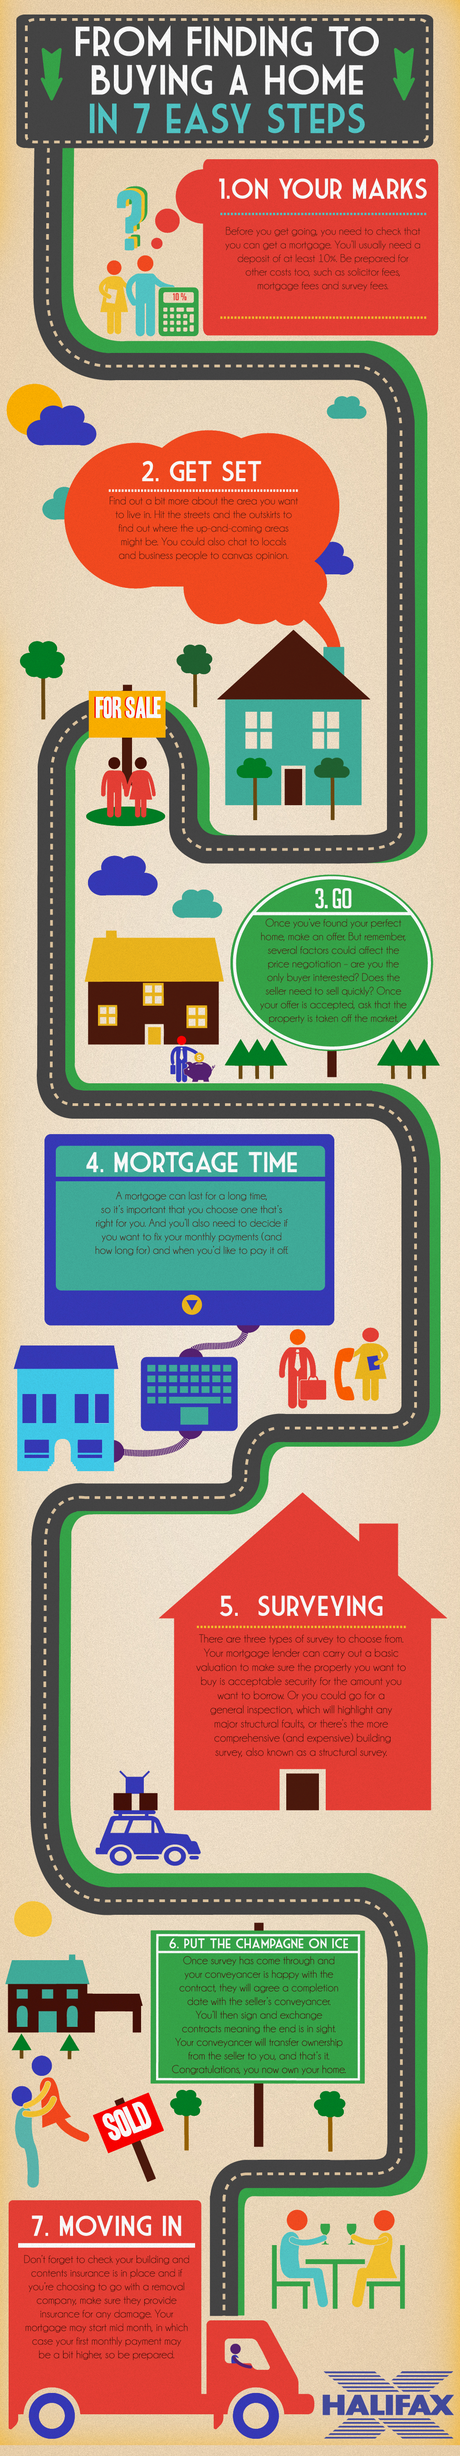 Buying A Home In 7 Easy Steps Infographic